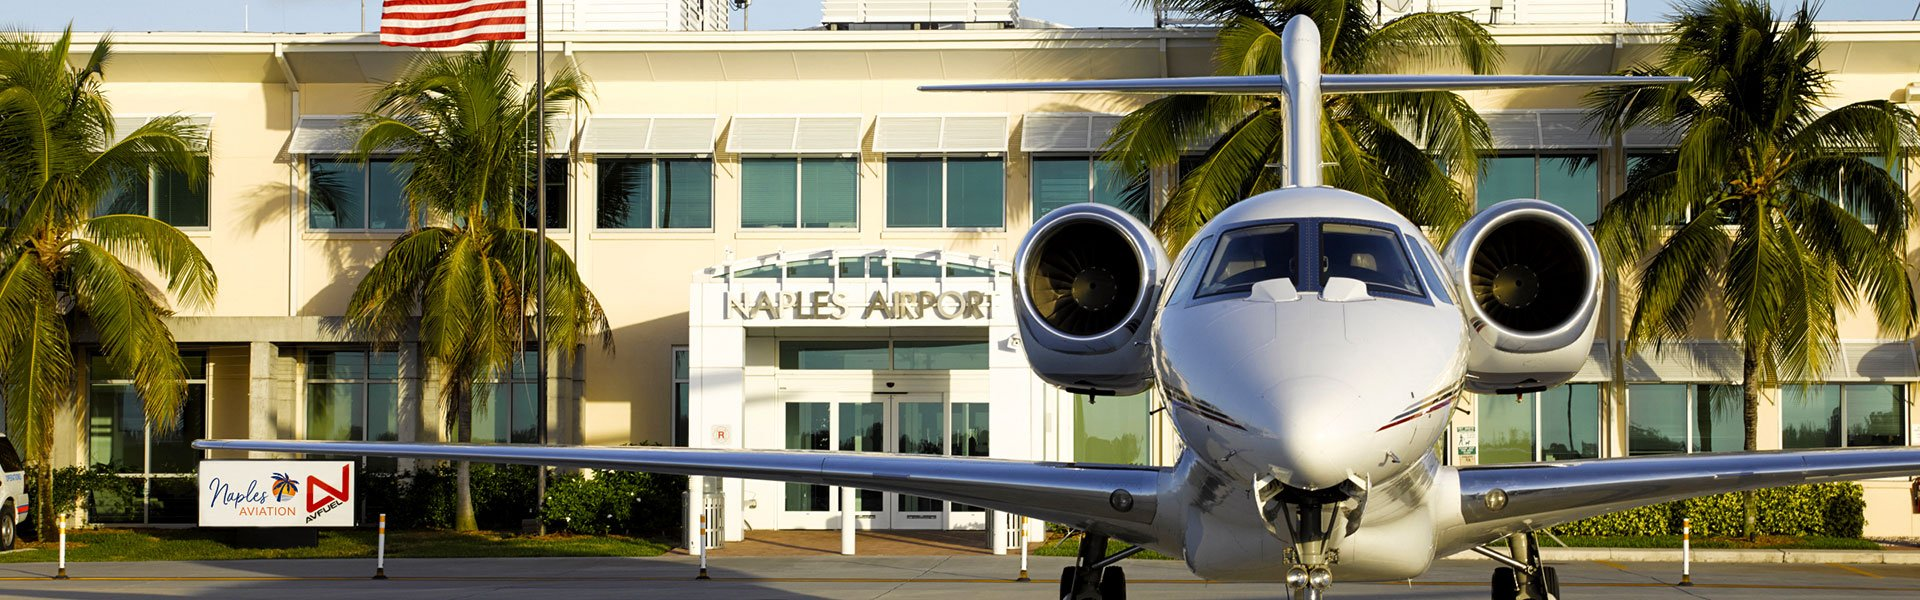 Naples Airport FBO photo